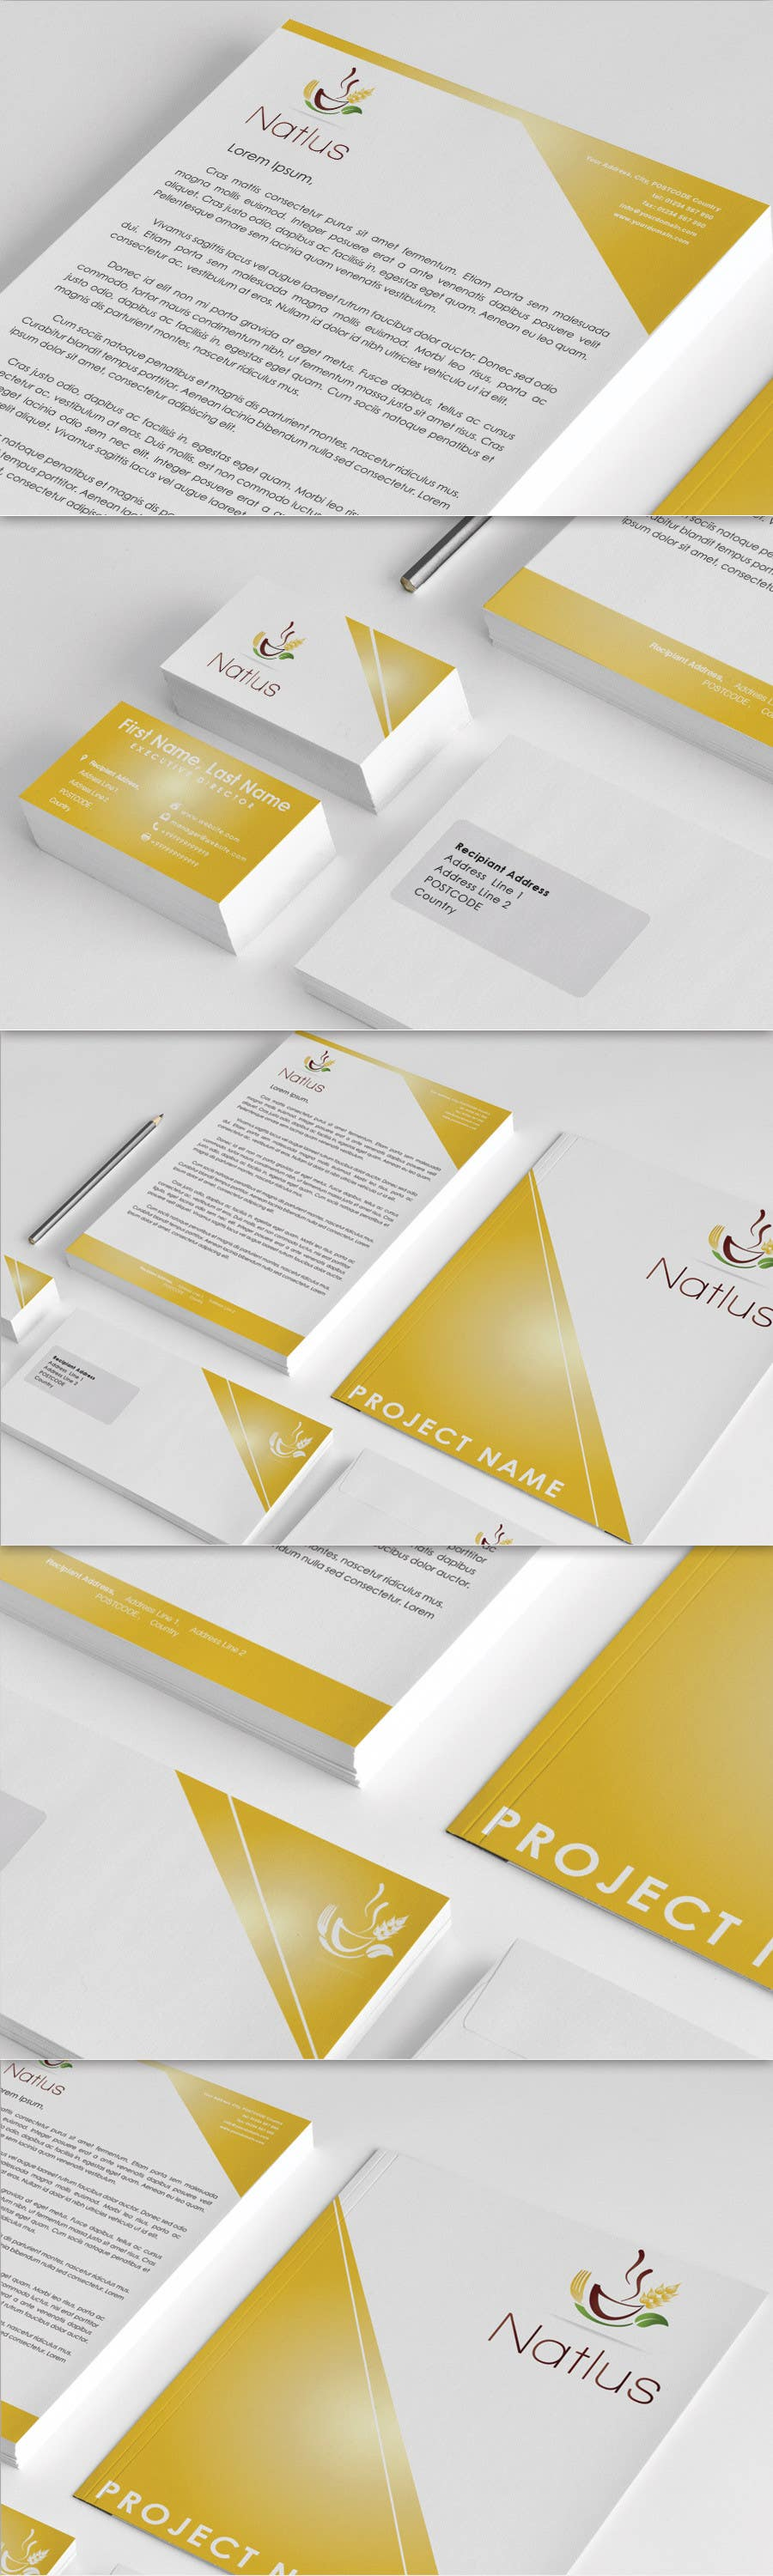 #77 for Design a logo & complete identity for NATLUS, by CTLav